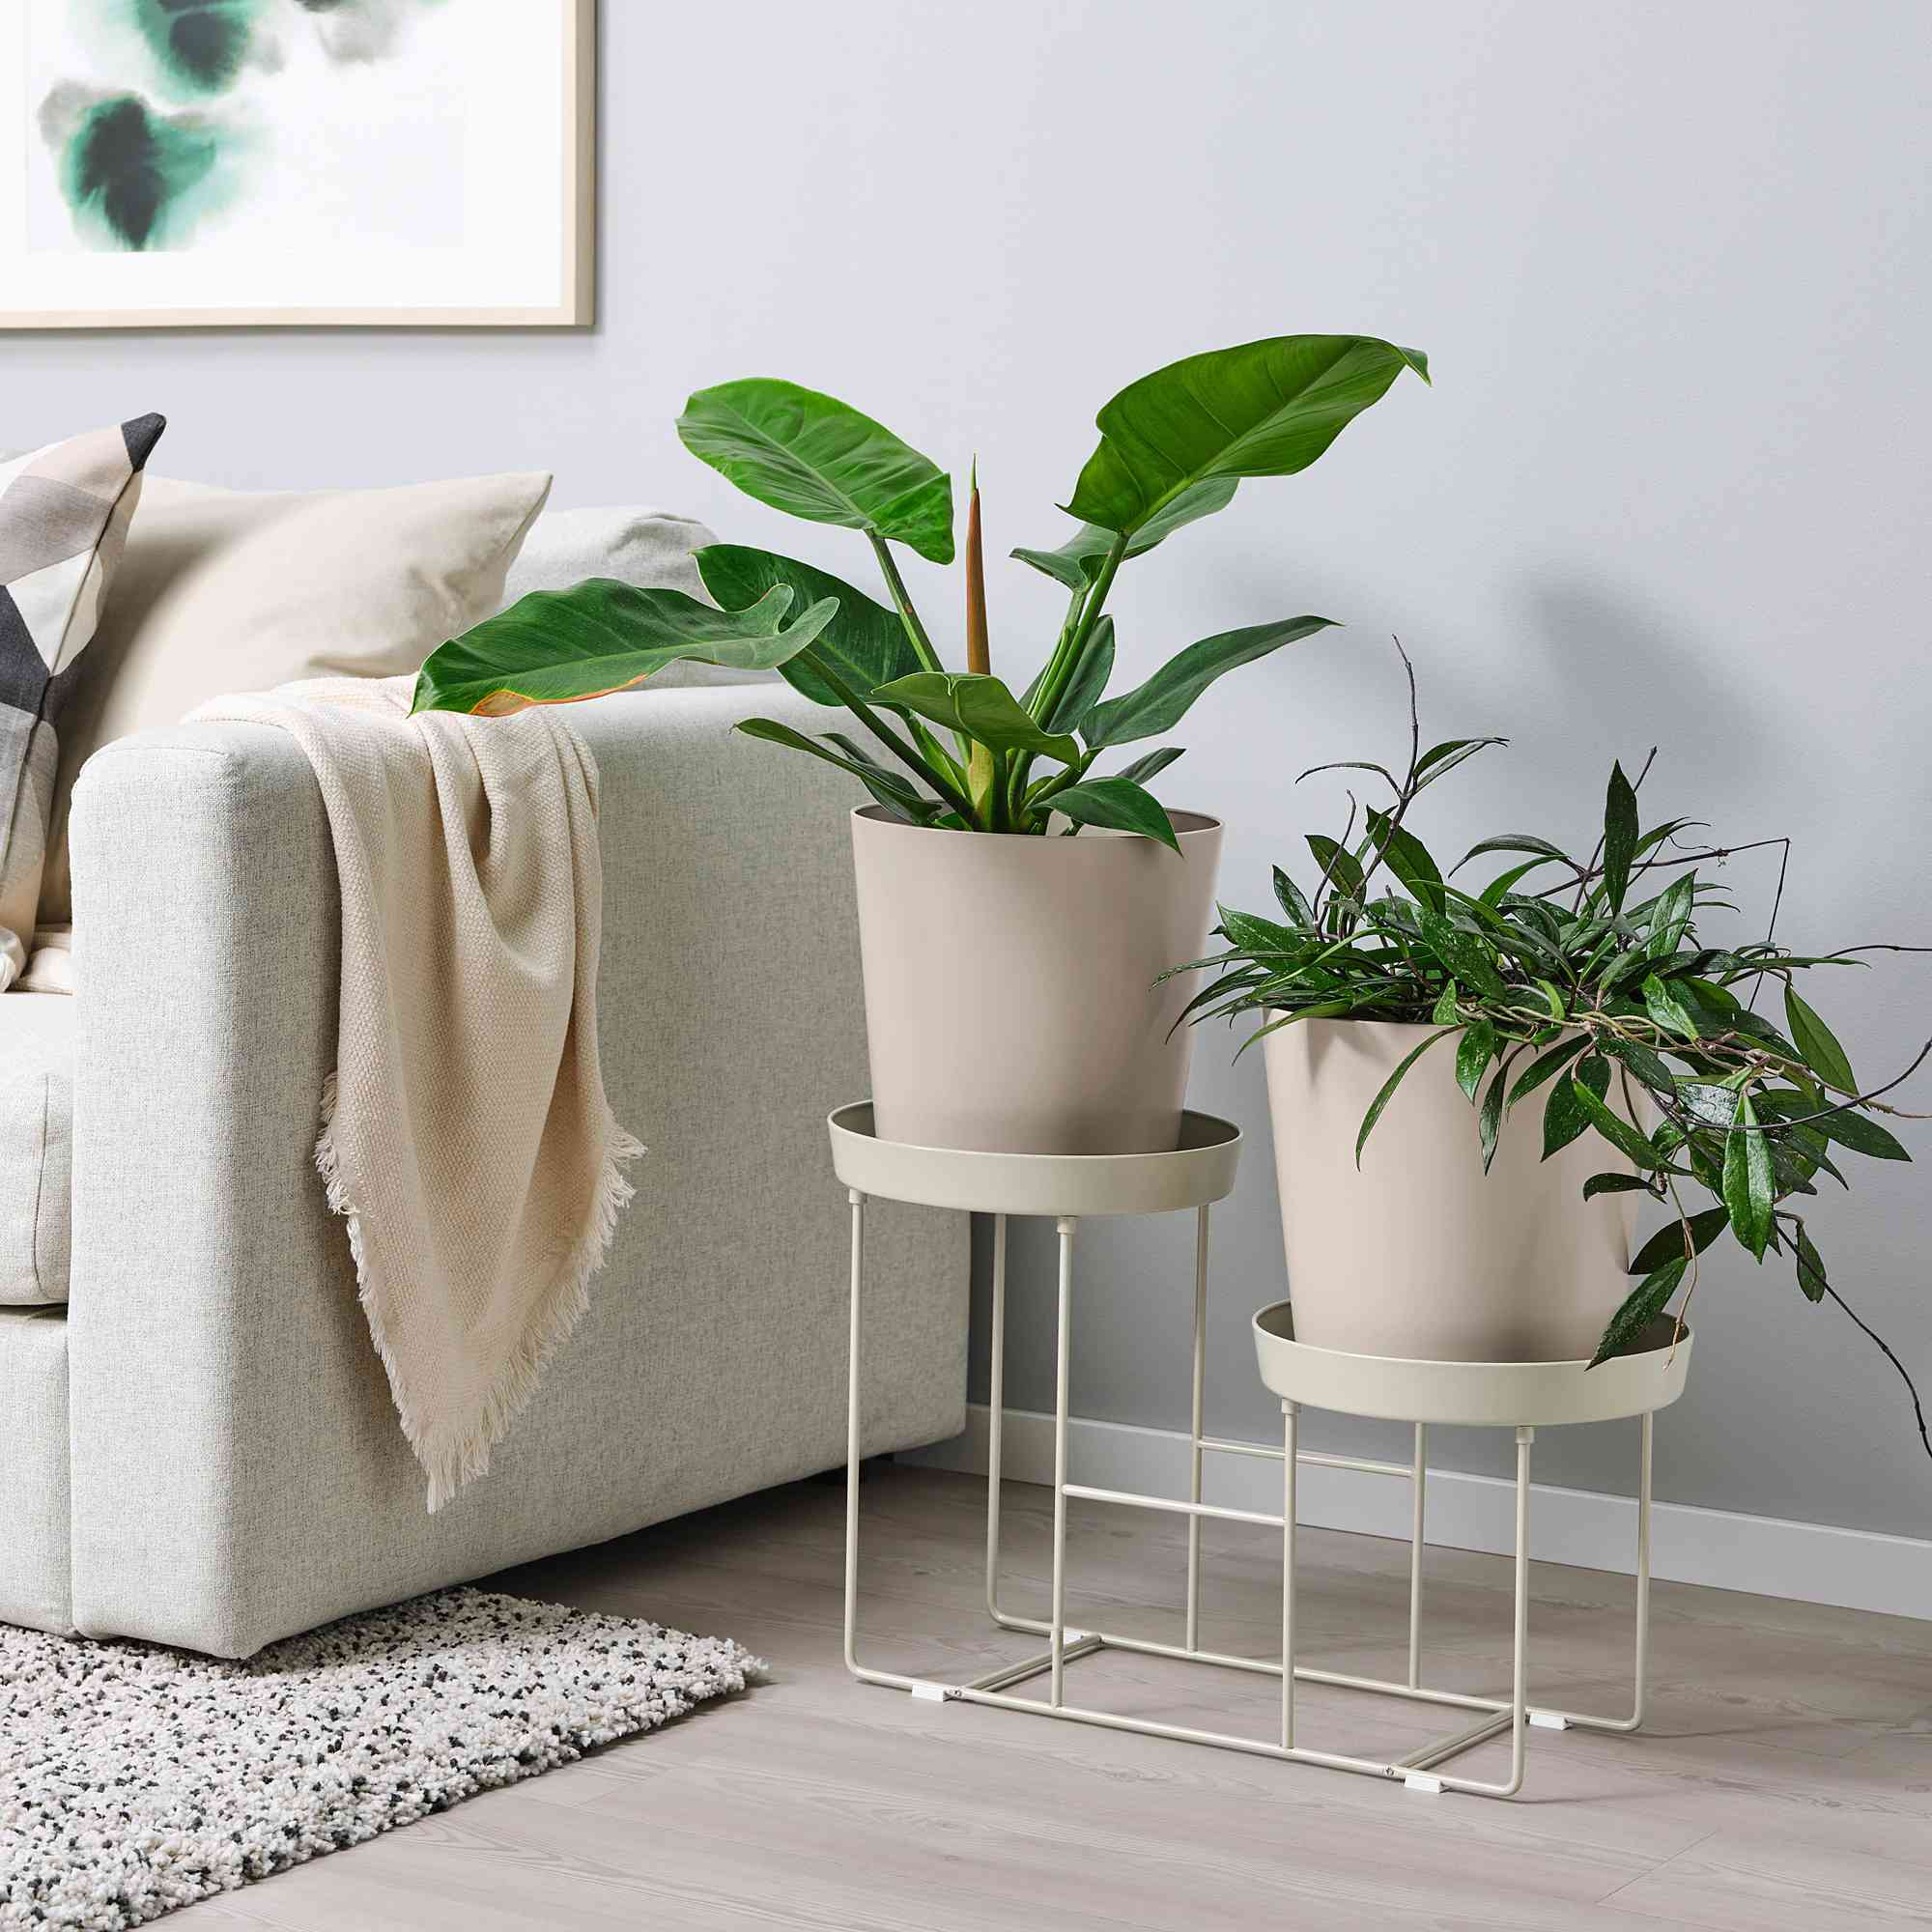 VITLÖK Plant Stand in living room.